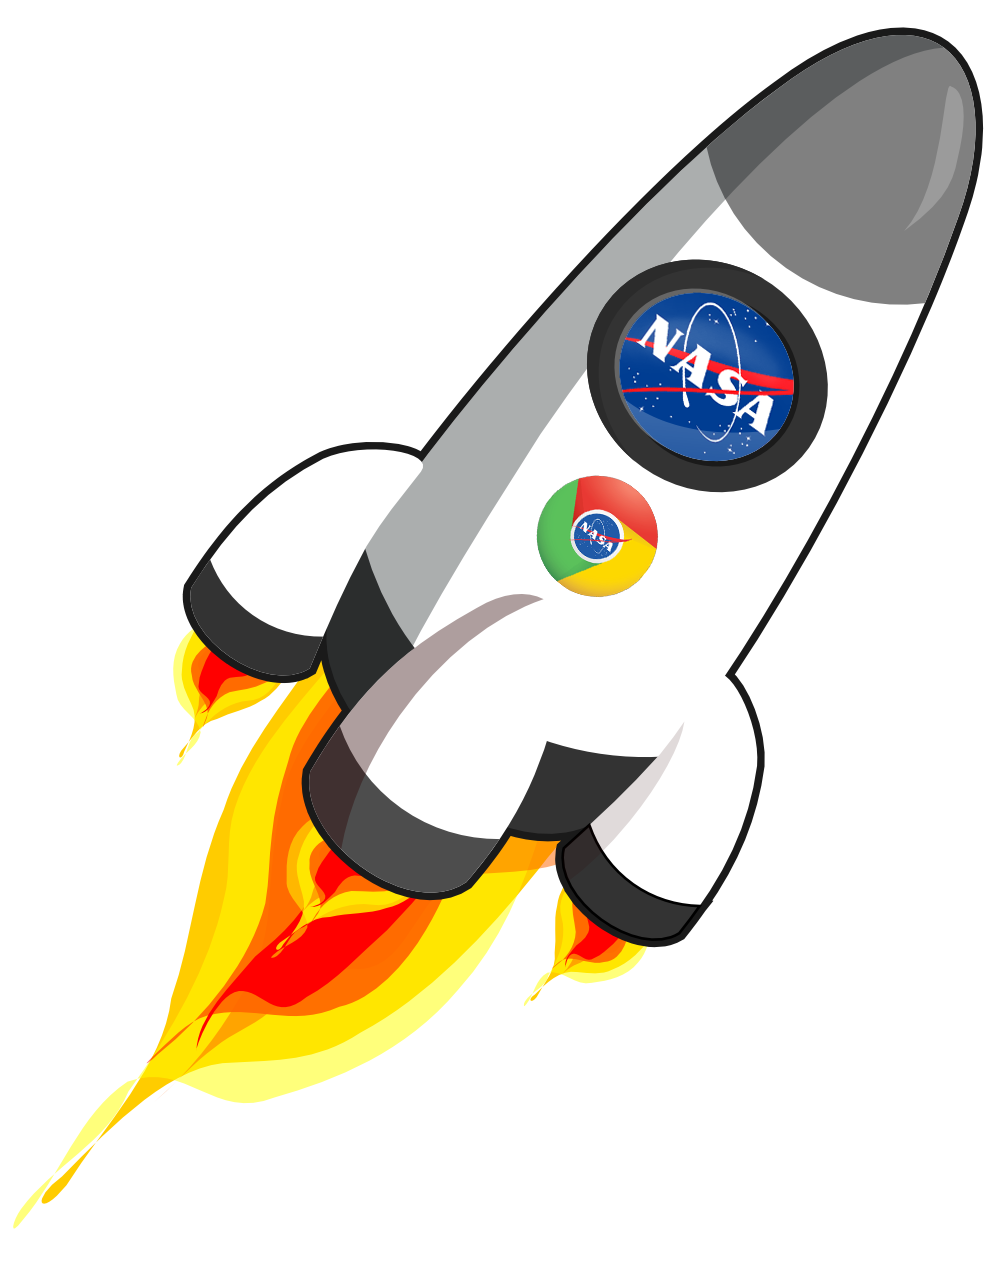 Ultron browser . Clipart rocket space craft